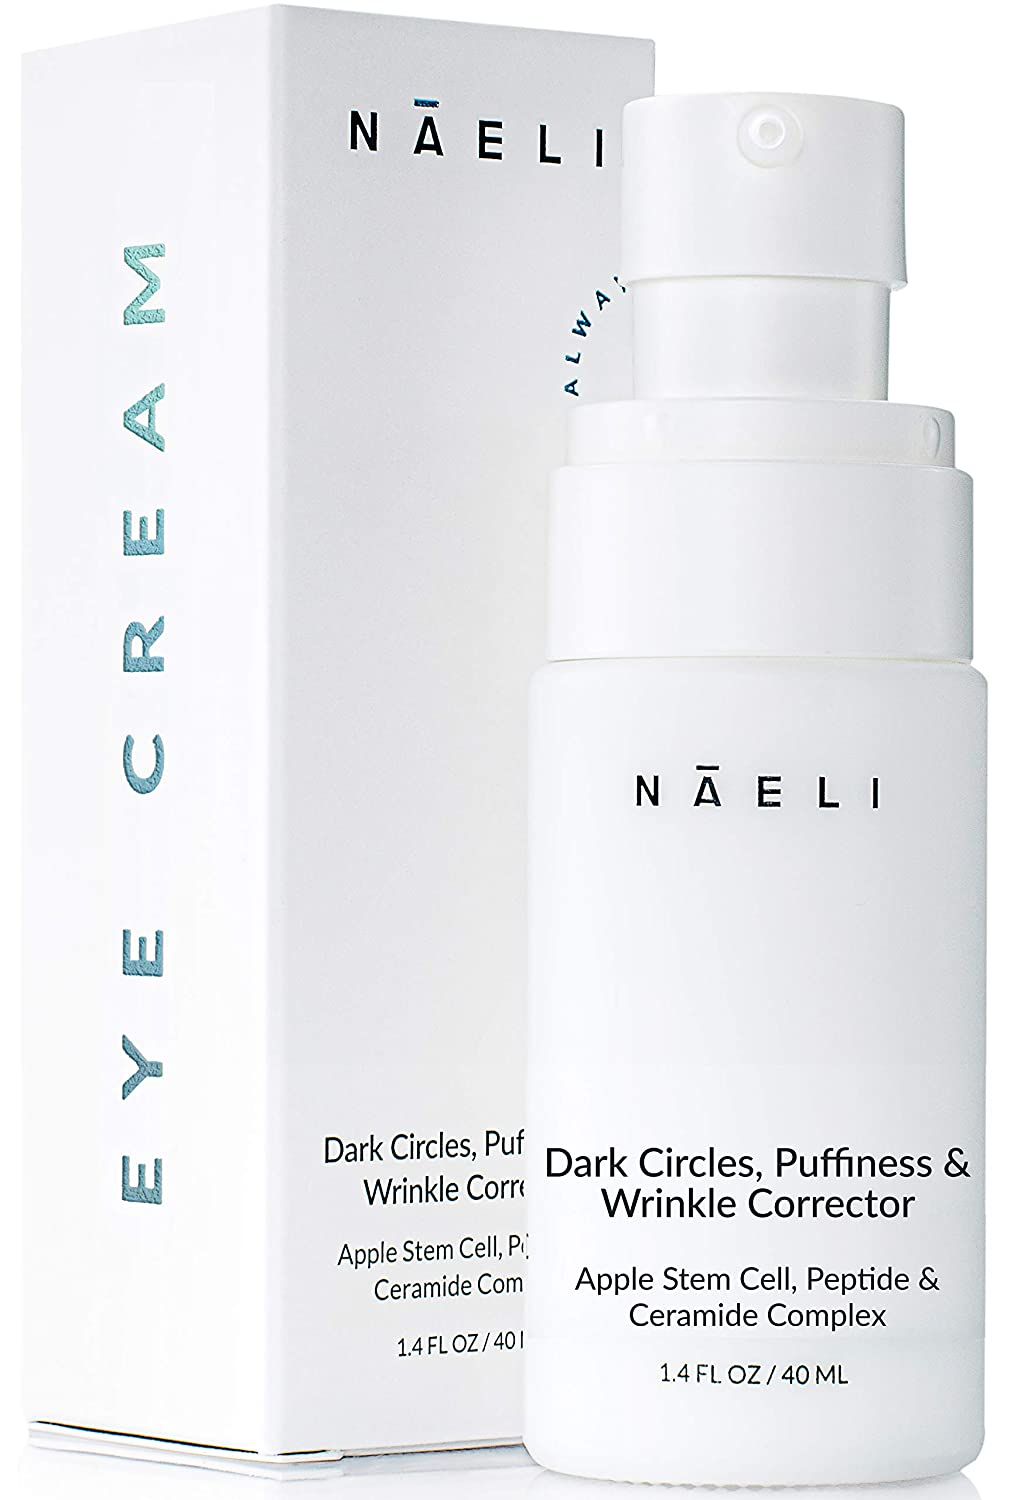 Eye Cream for Dark Circles, Puffiness & Wrinkles with Anti Aging Apple Stem Cell & Peptide Complex - Reduces Fine Lines, Diminishes Bags & Restores Under Eye, 1.4 oz.